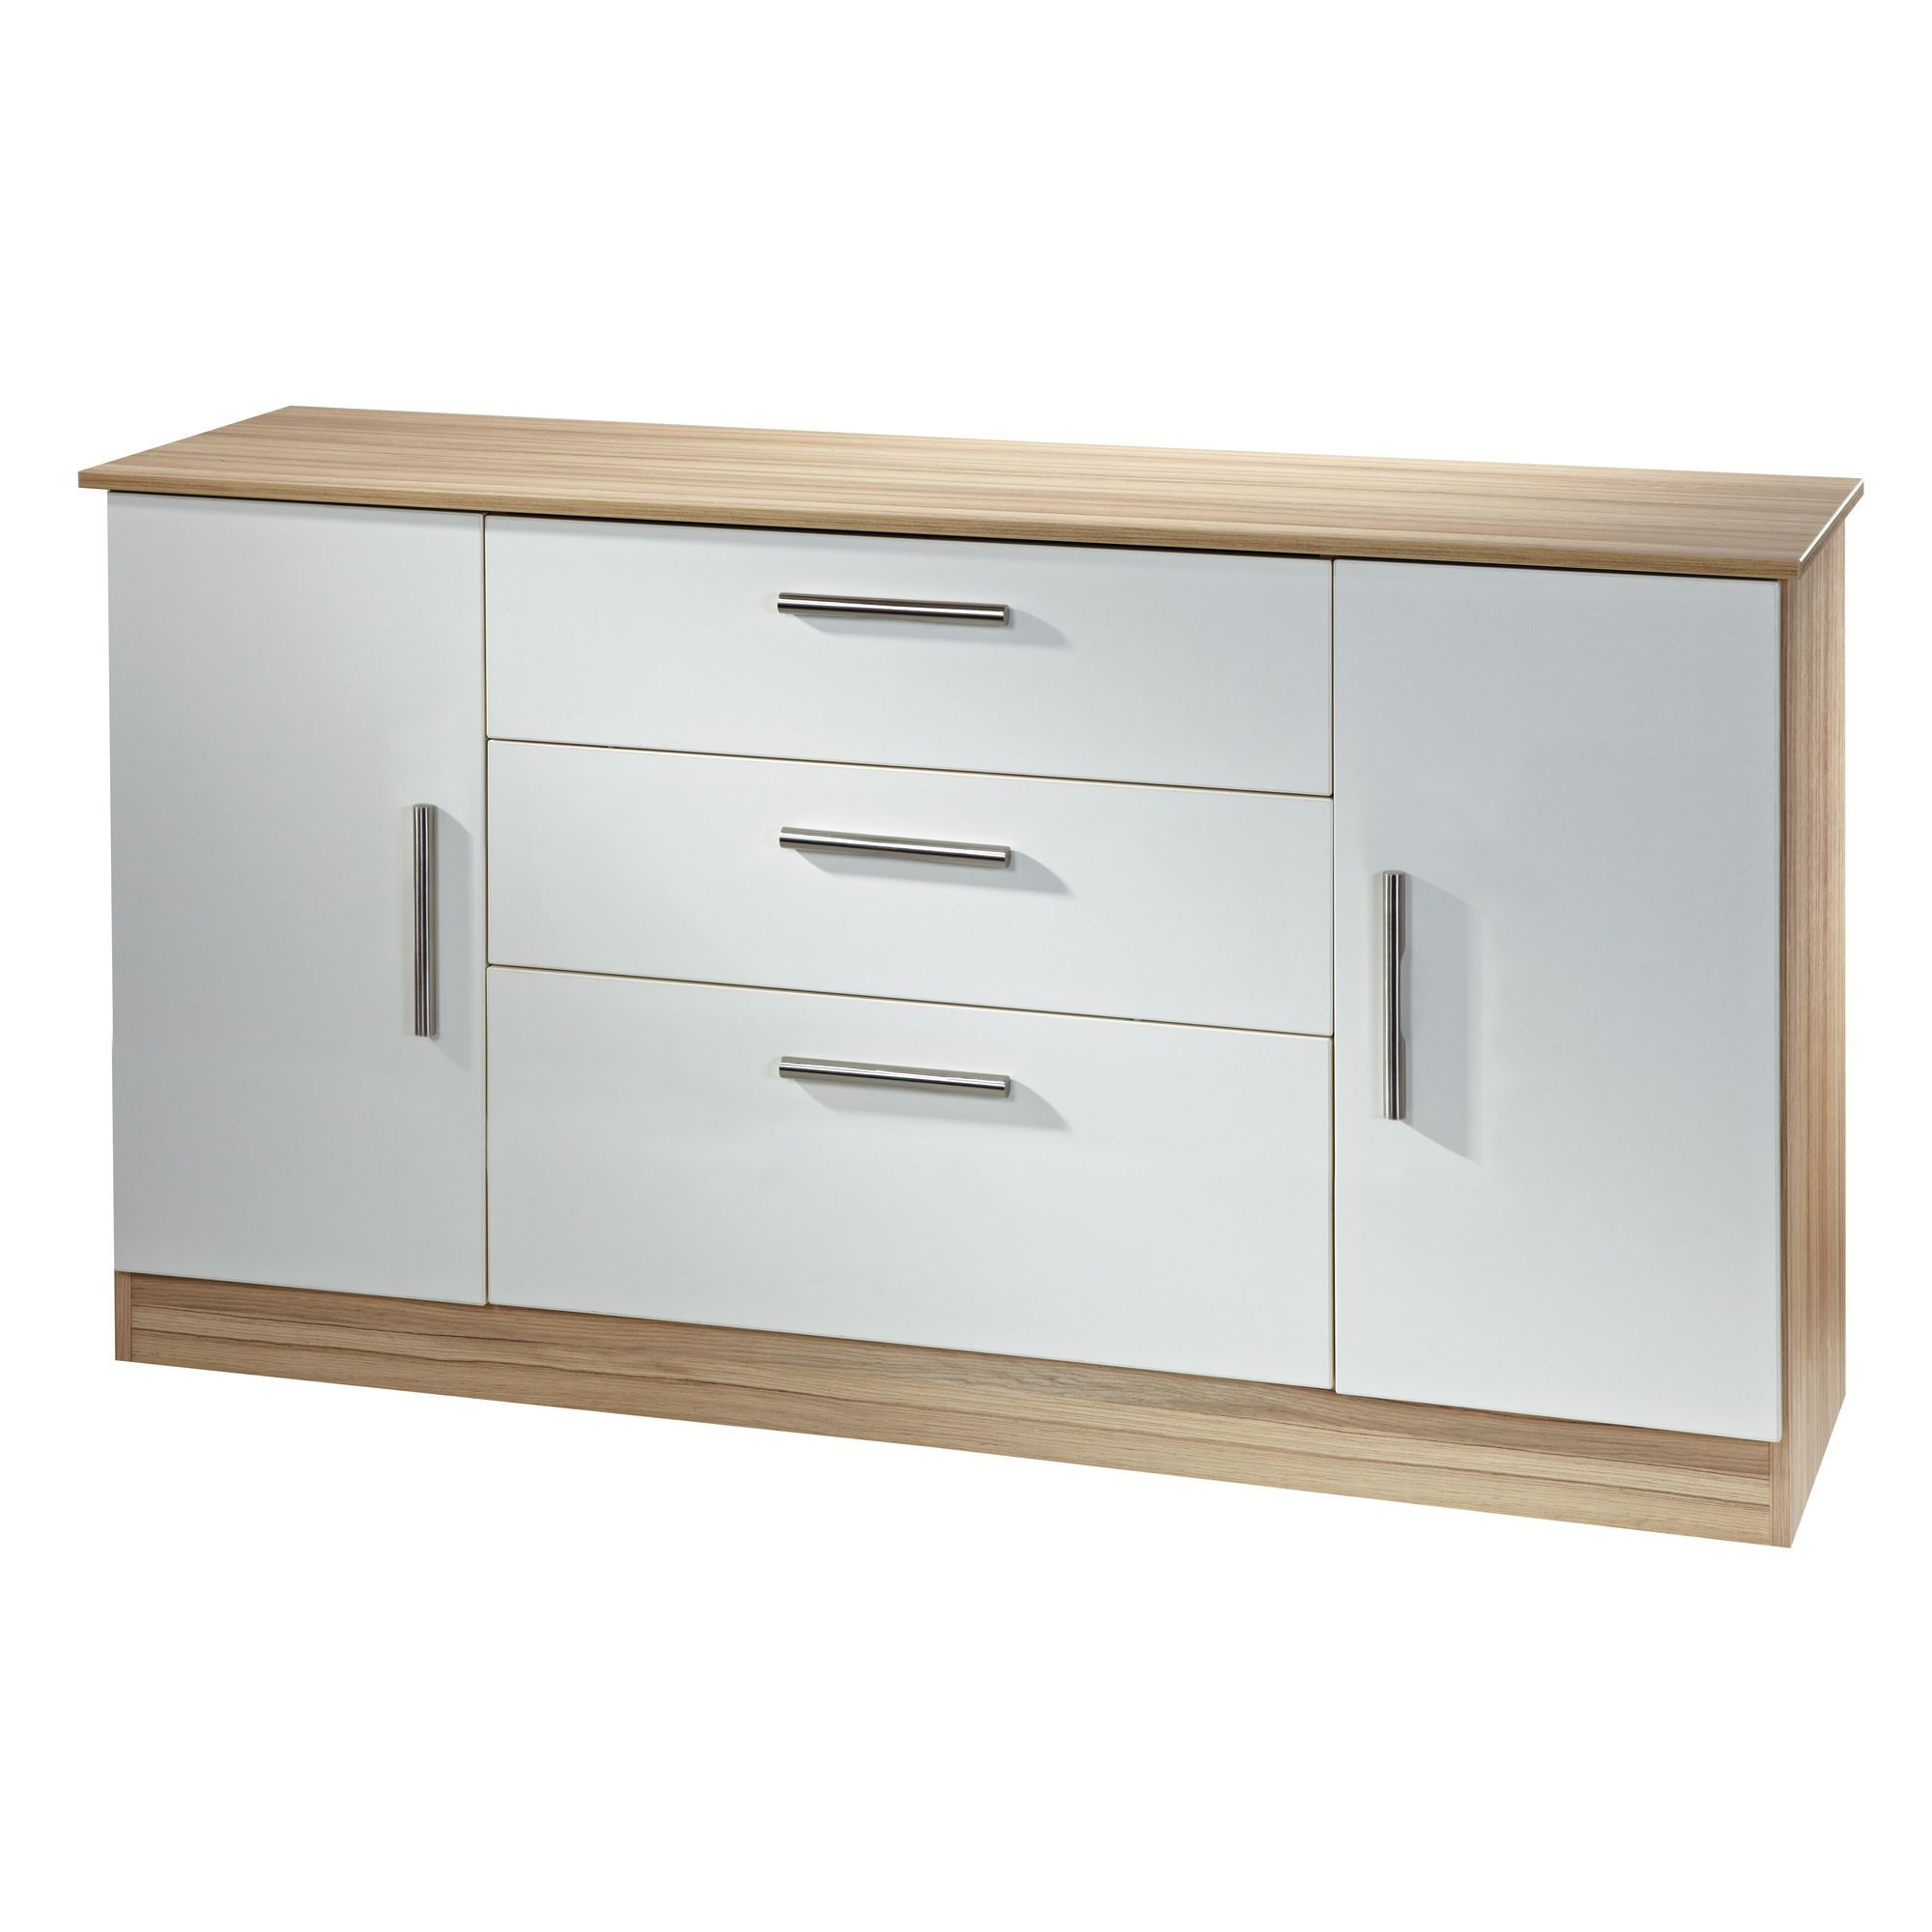 Welcome Furniture Living Room Wide 2 Door / 3 Drawer Unit - Panga at Tesco Direct